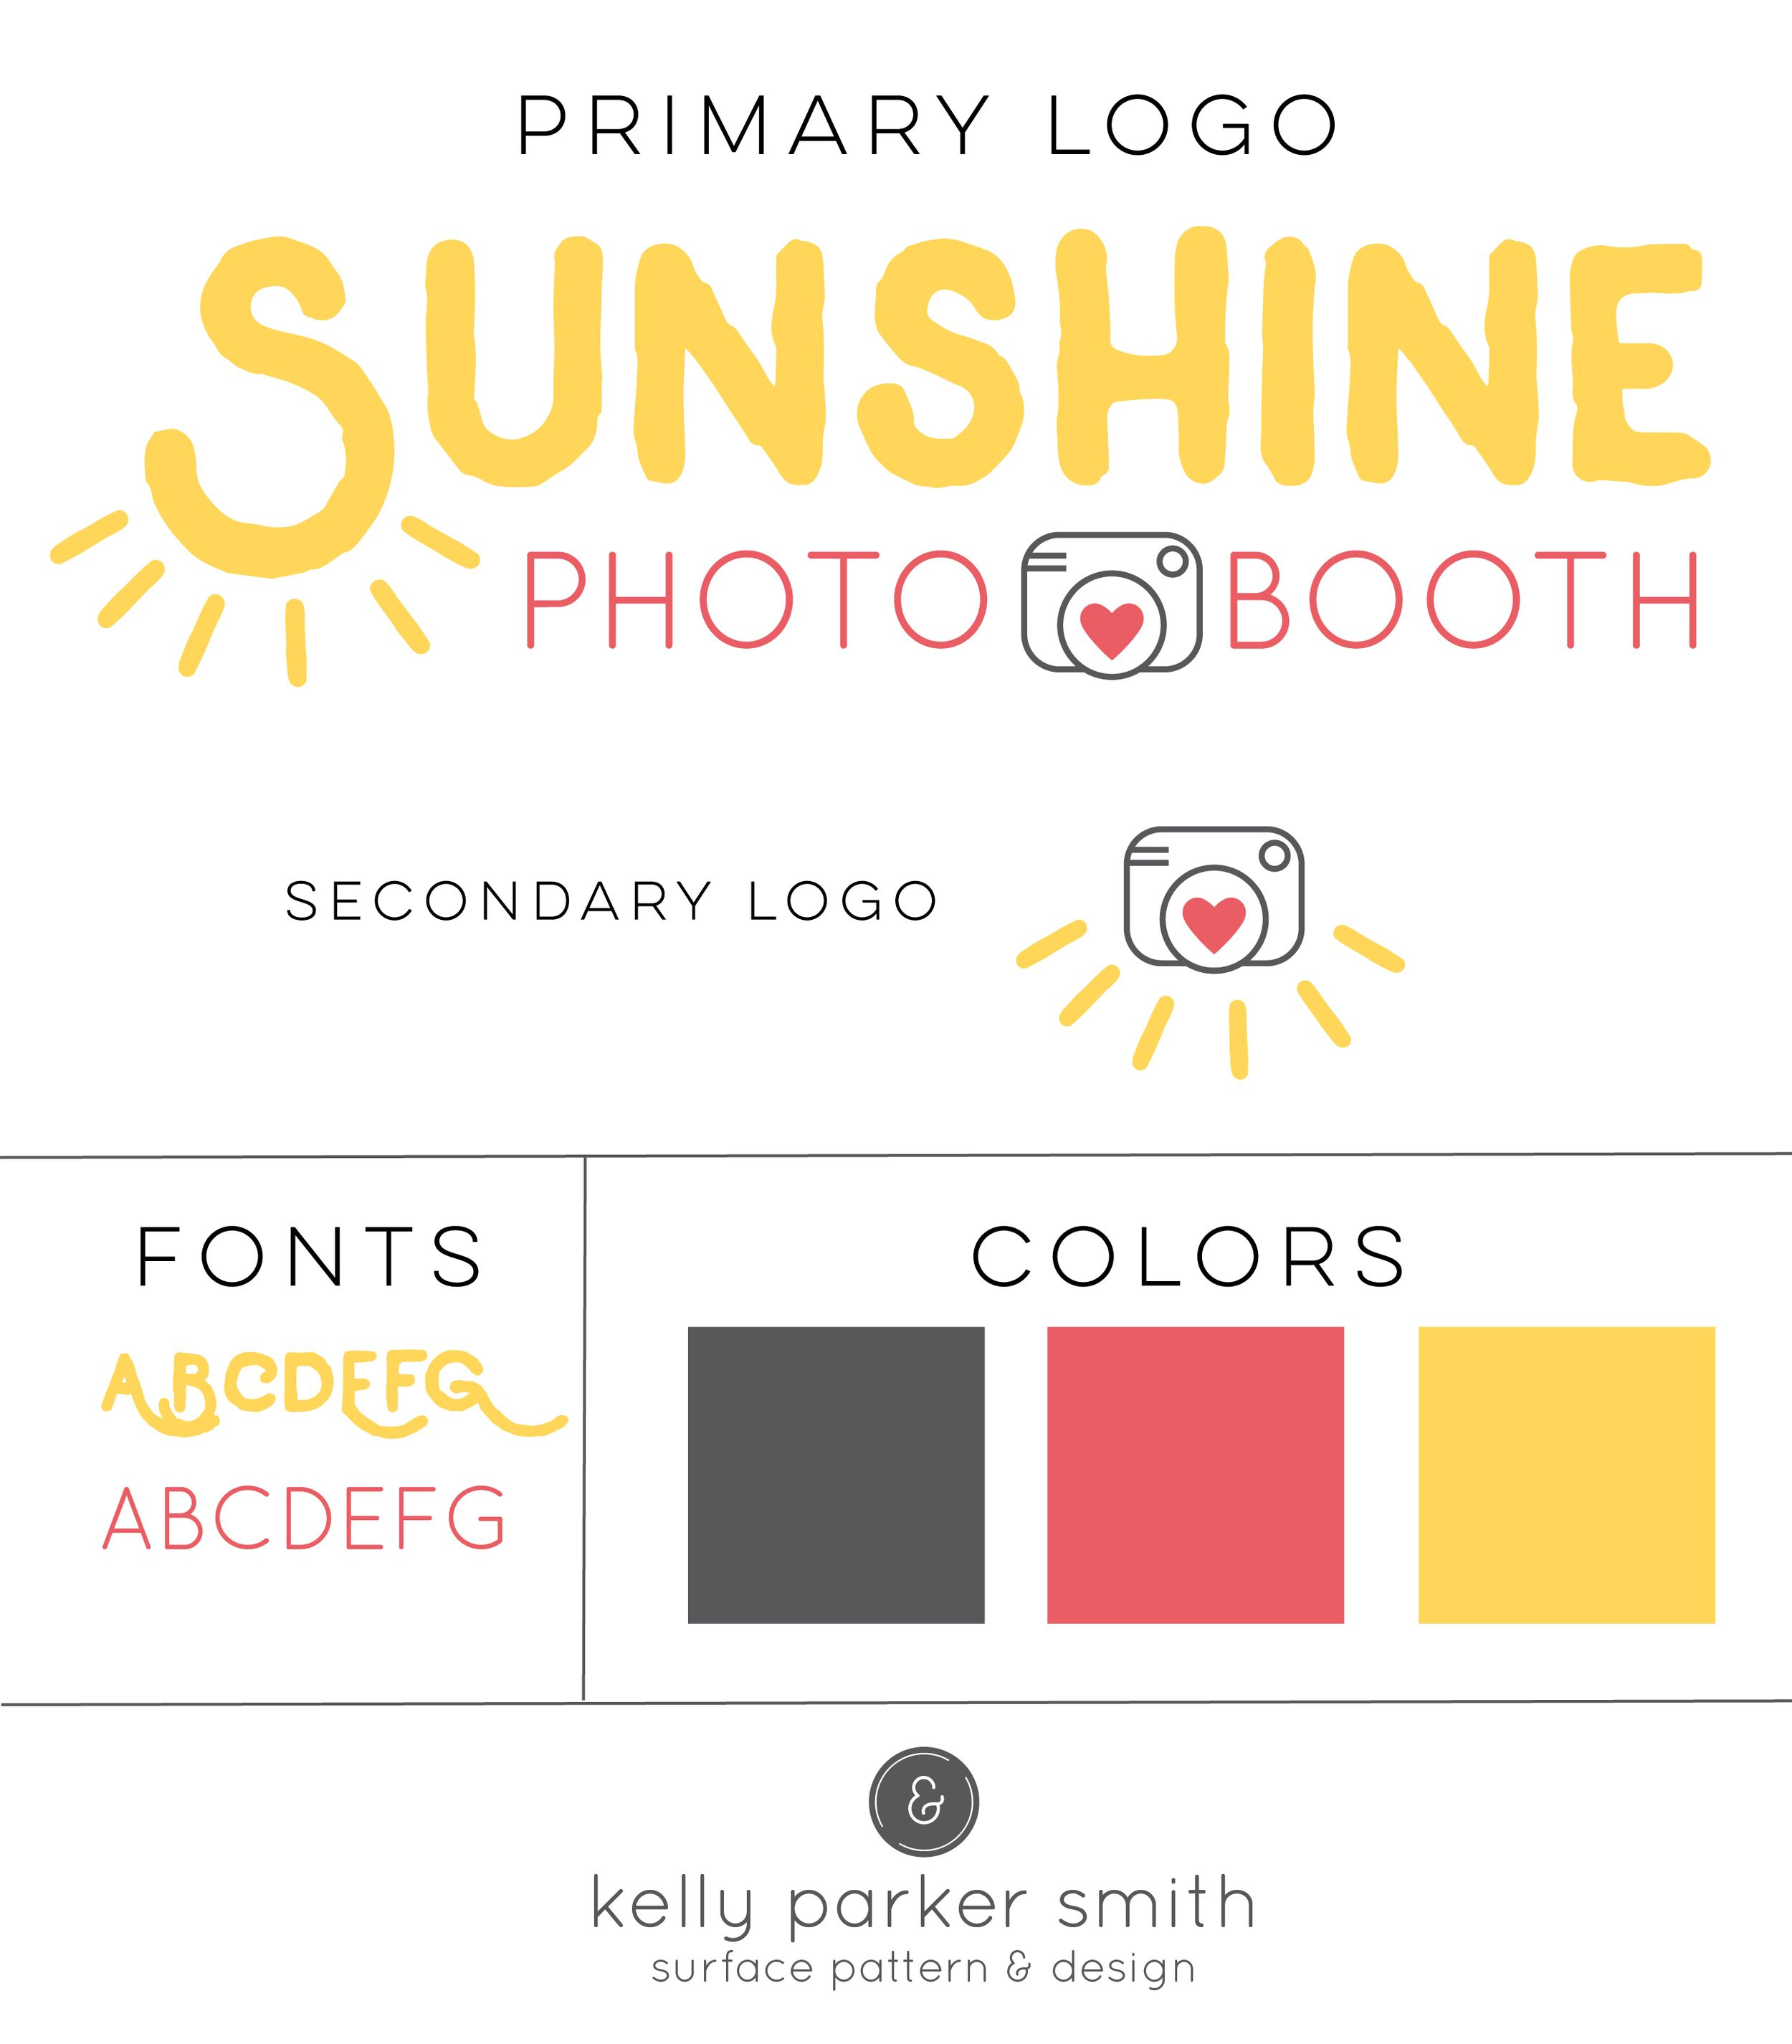 Sunshine Photo Booth Design BOARD_concpt board.jpg Photo